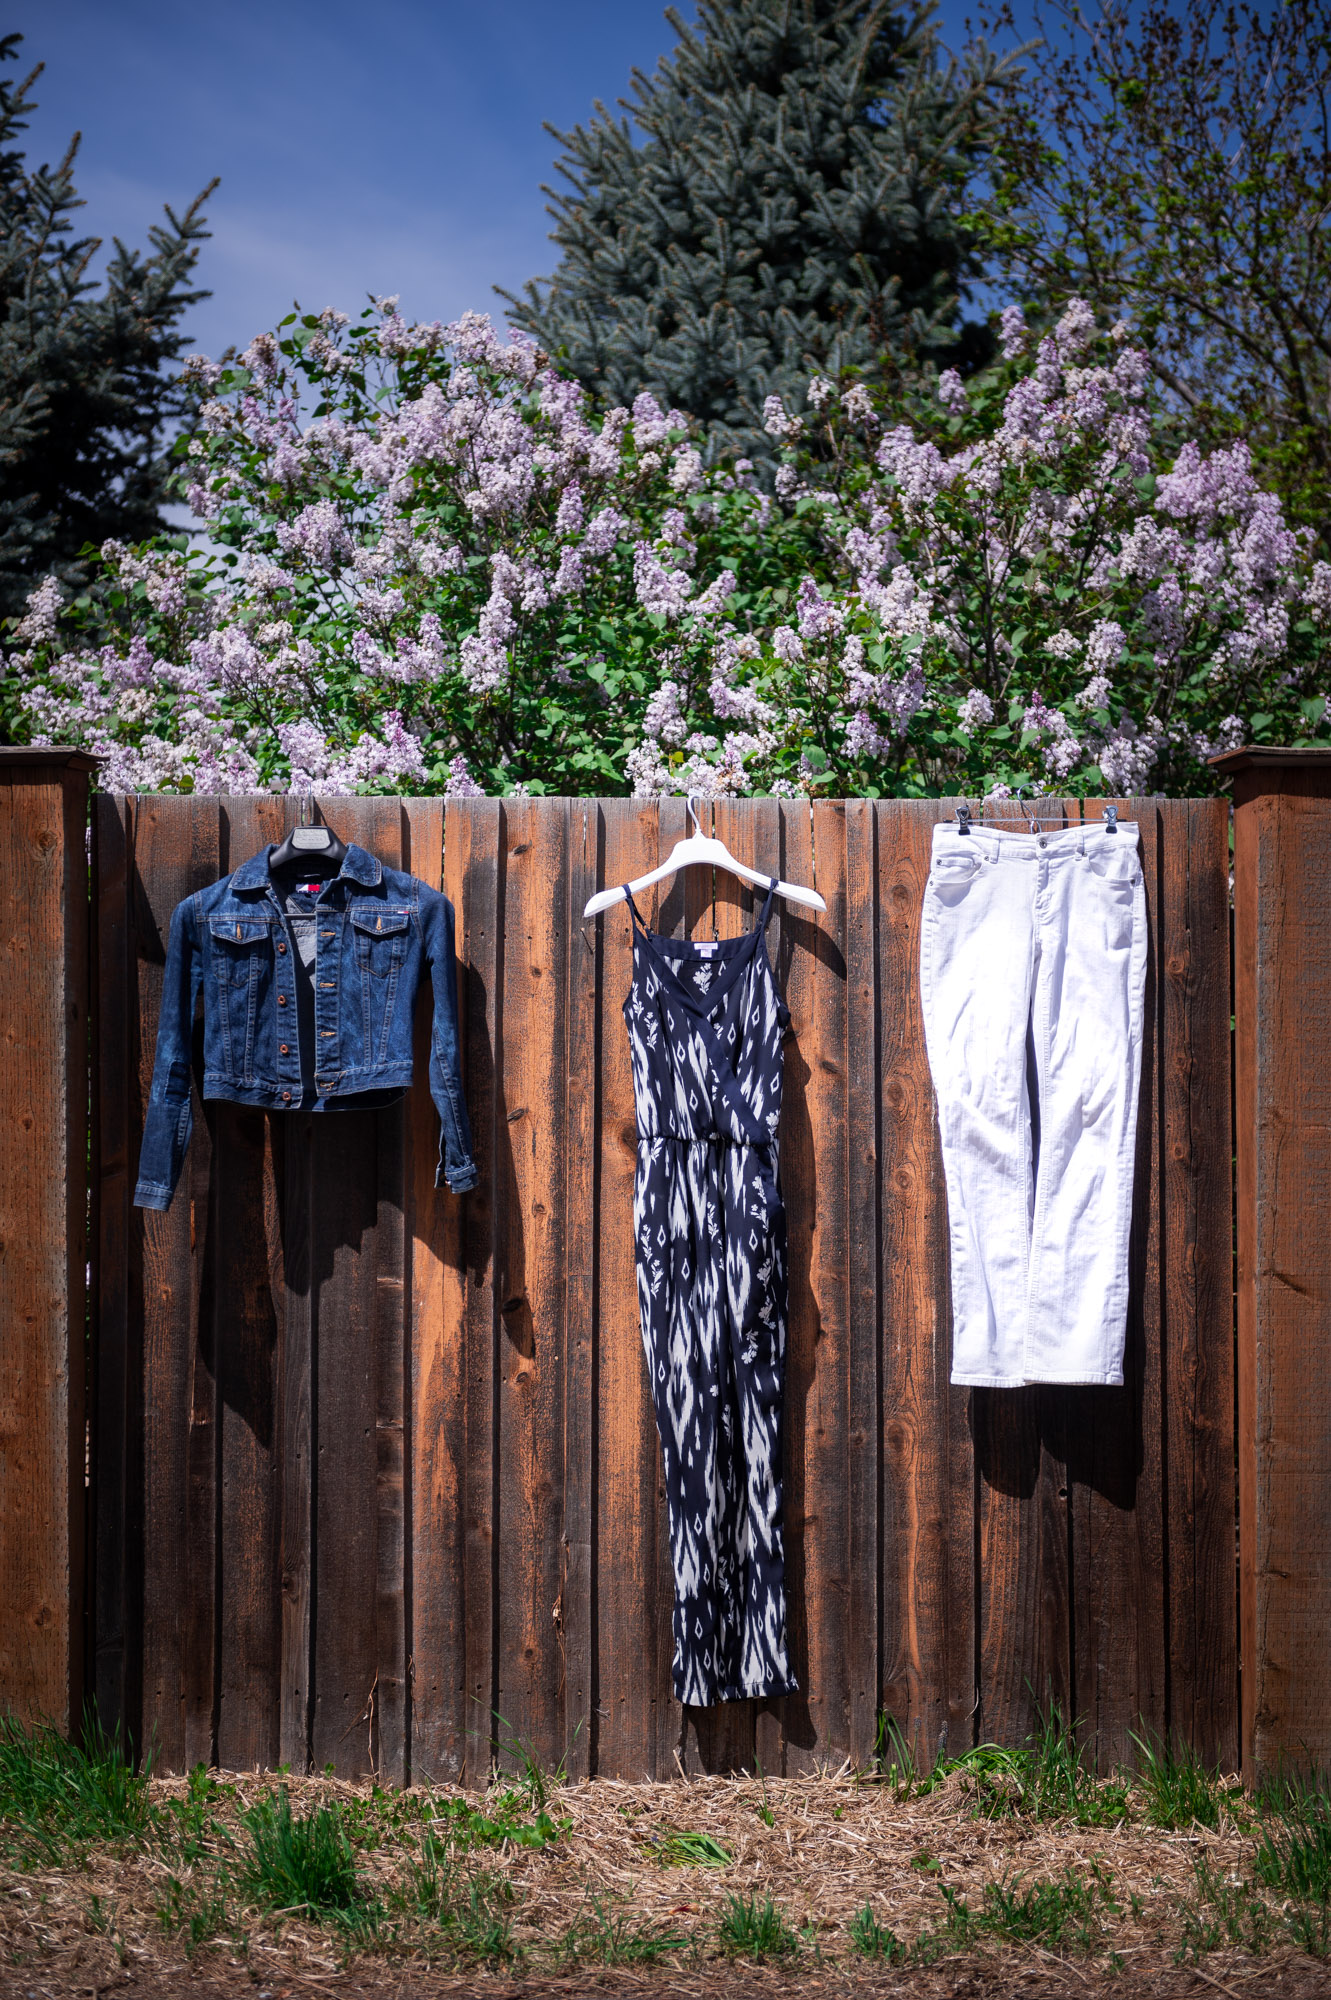 Jumpsuit, white jeans, and a jean jacket hanging on a fence with purple lilacs.